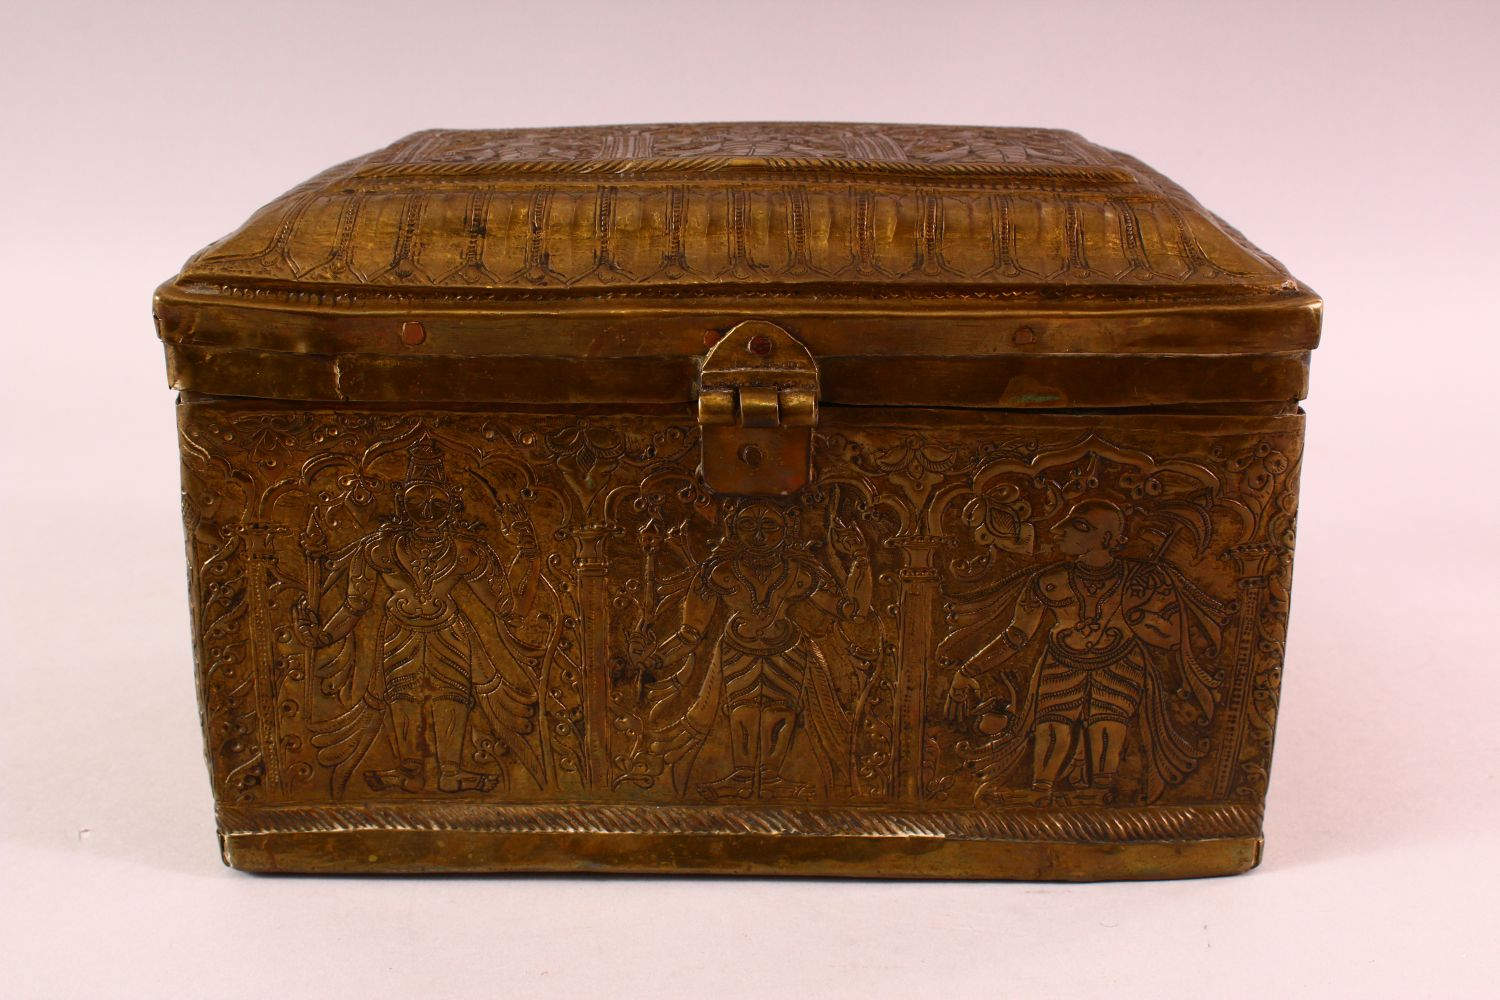 A FINE 18TH CENTURY SOUTH INDIAN ENGRAVED BRASS CASKET depicting Hindu gods, 26cm long, 16cm high, - Image 2 of 6